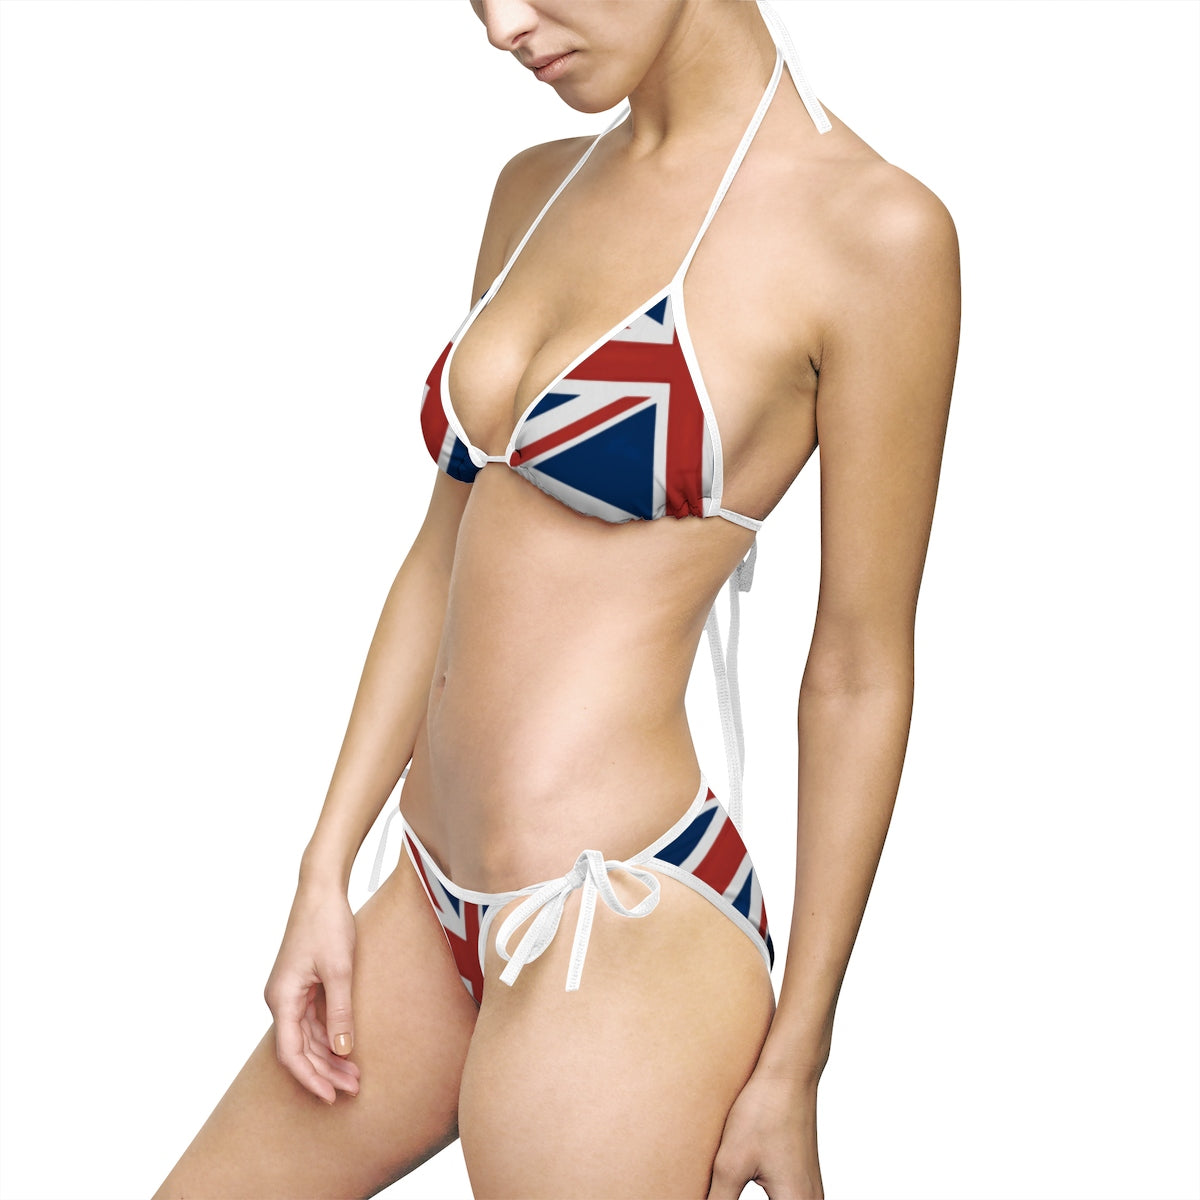 Homefront Girl® UK Women's Bikini Swimsuit - [shop_home]